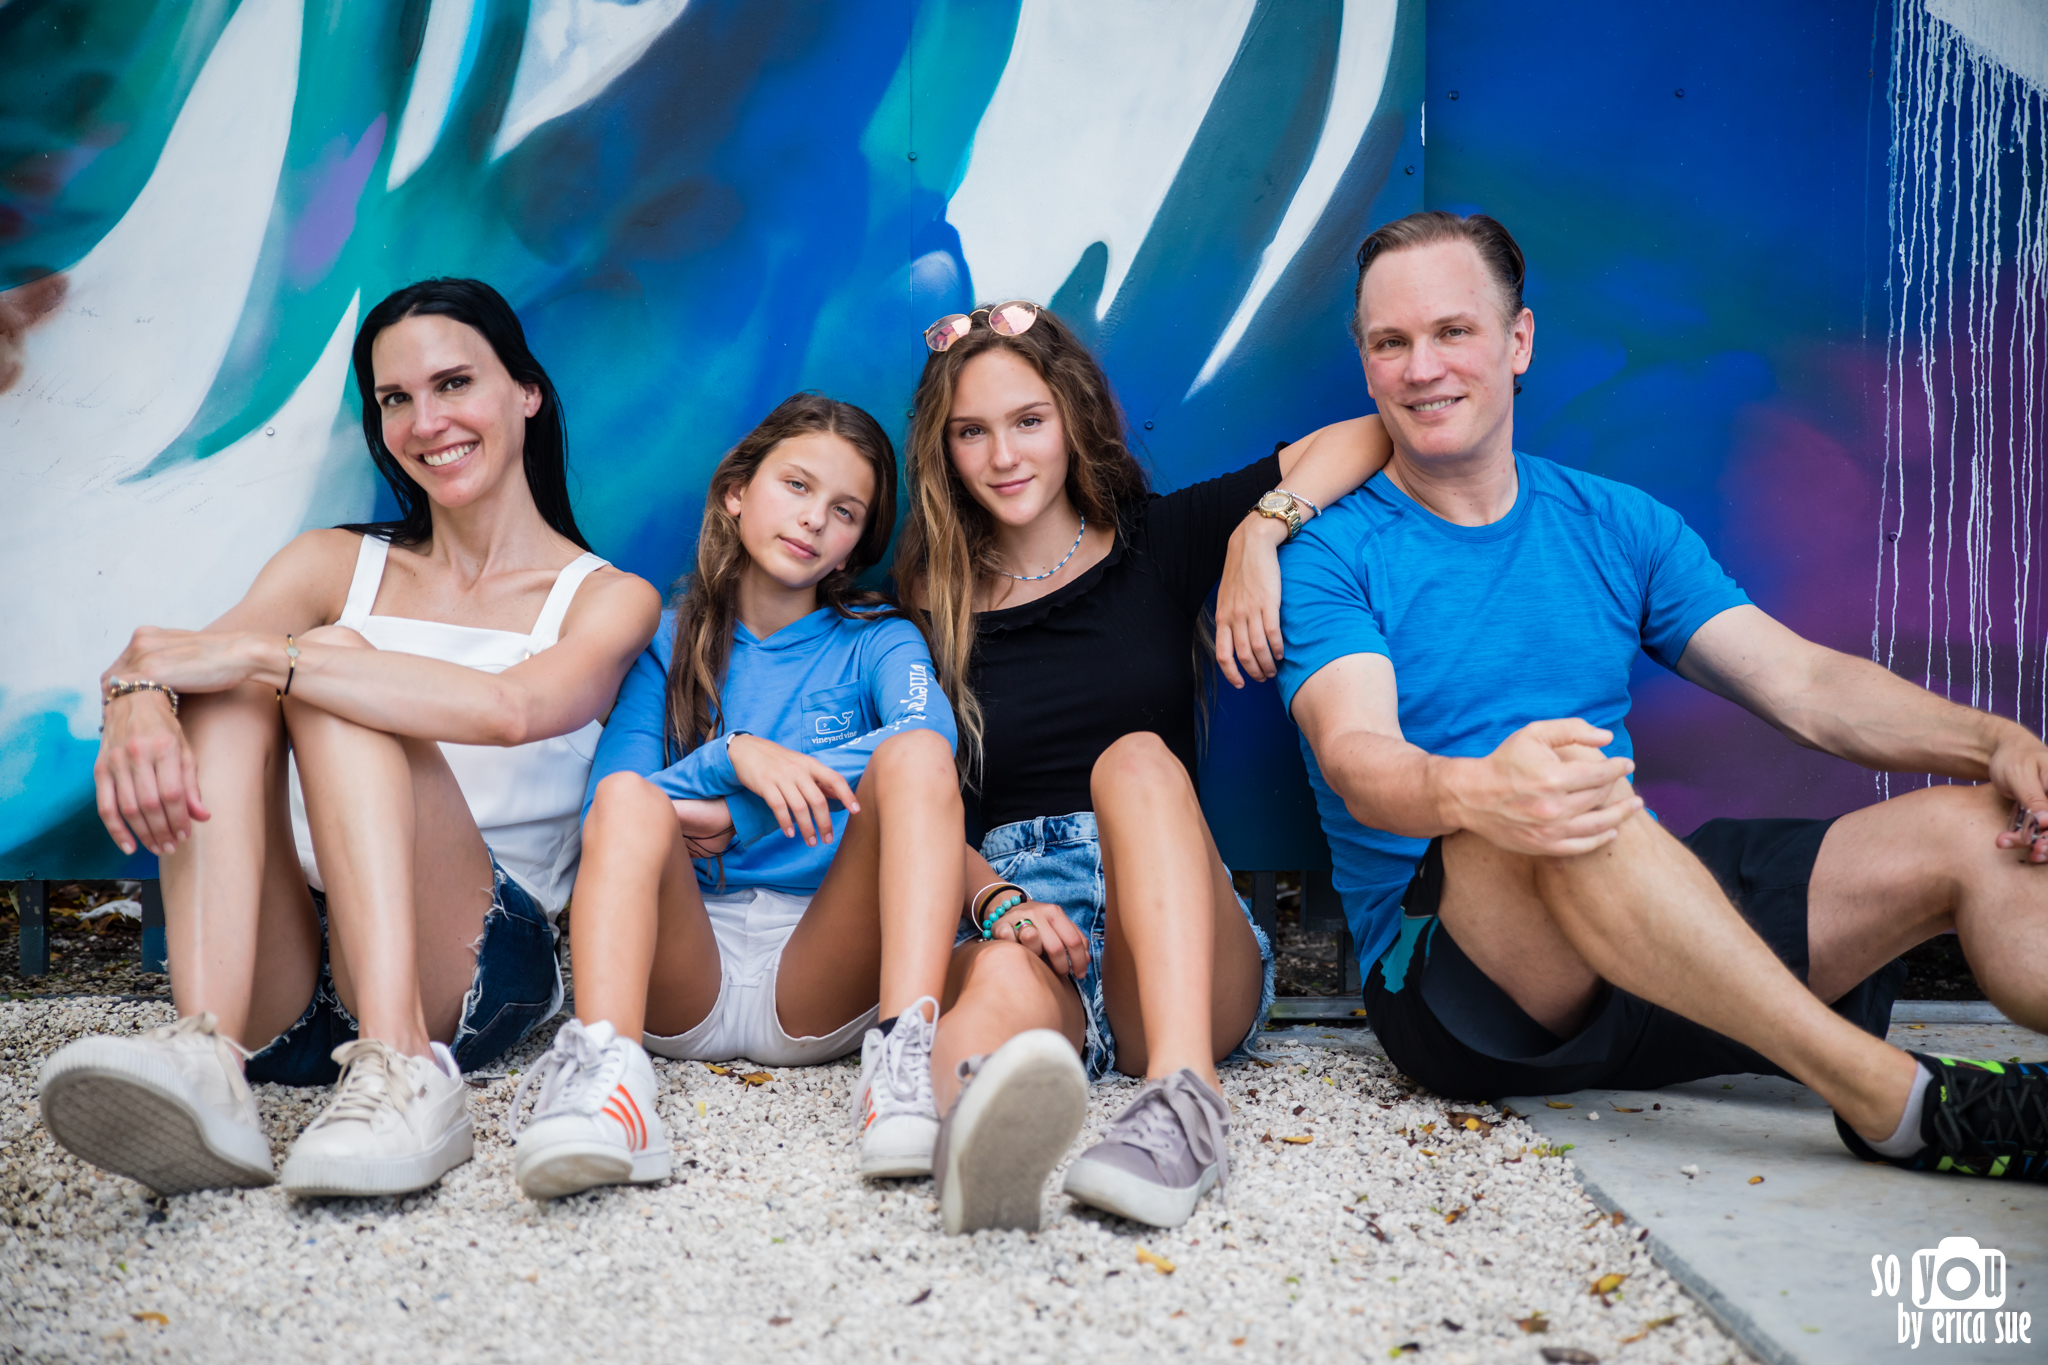 so-you-by-erica-sue-wynwood-walls-miami-photography-mitzvah-pre-shoot-5452.jpg